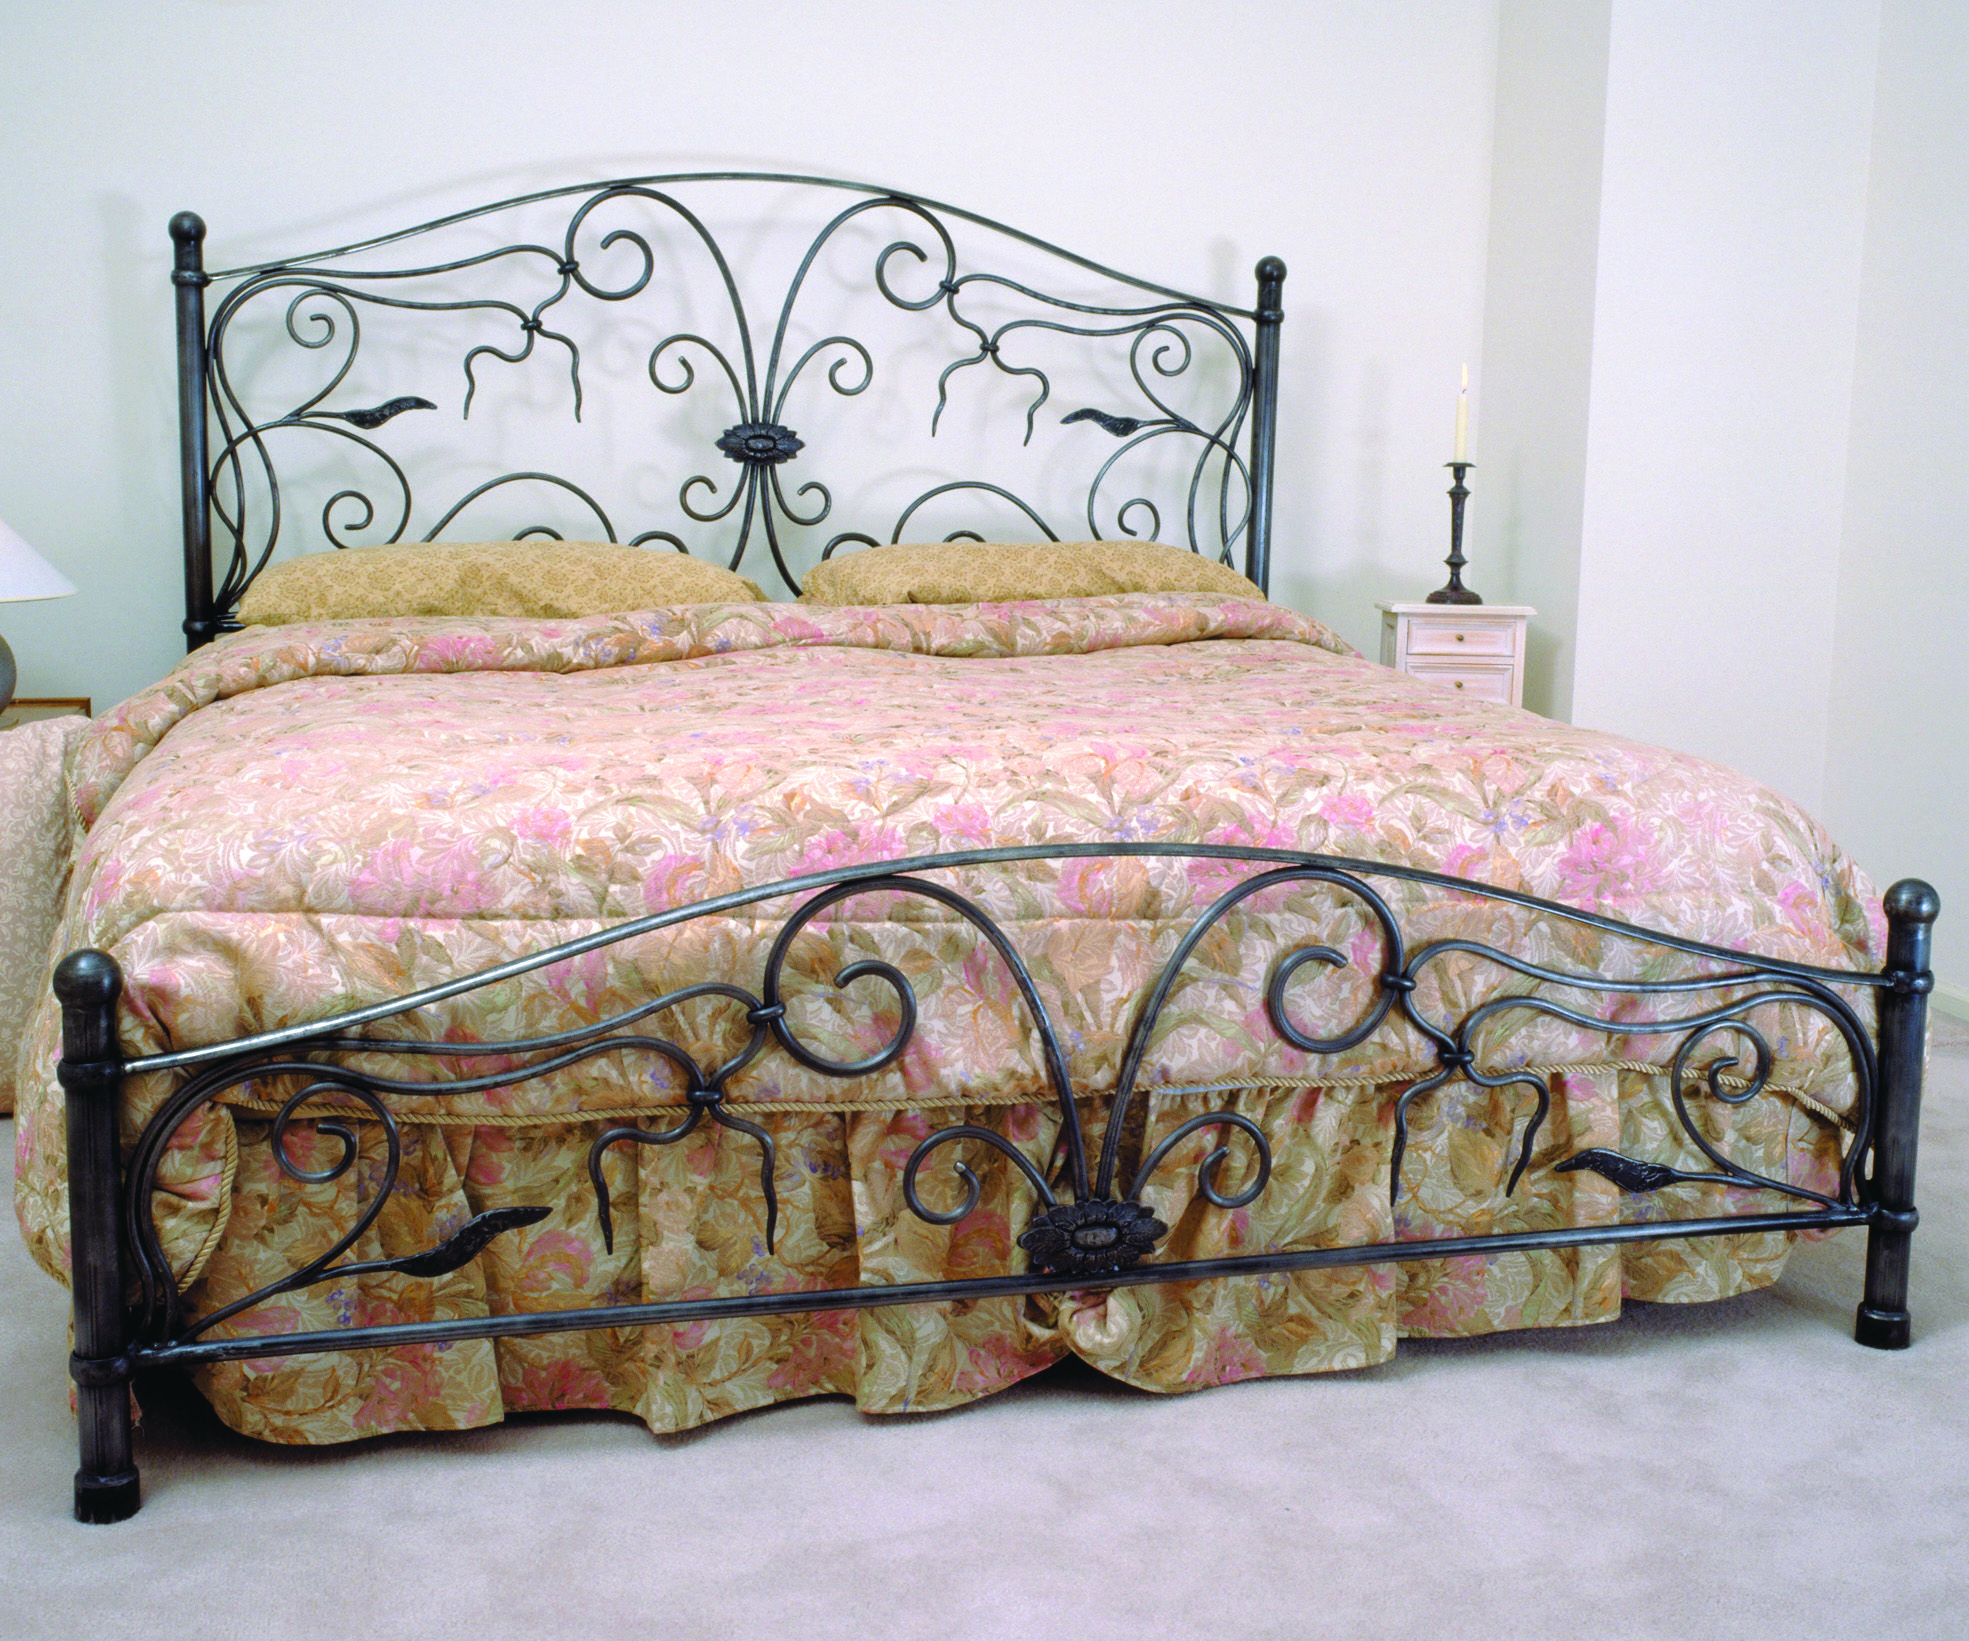 round bar Cal. King. Bed design, Iron headboard